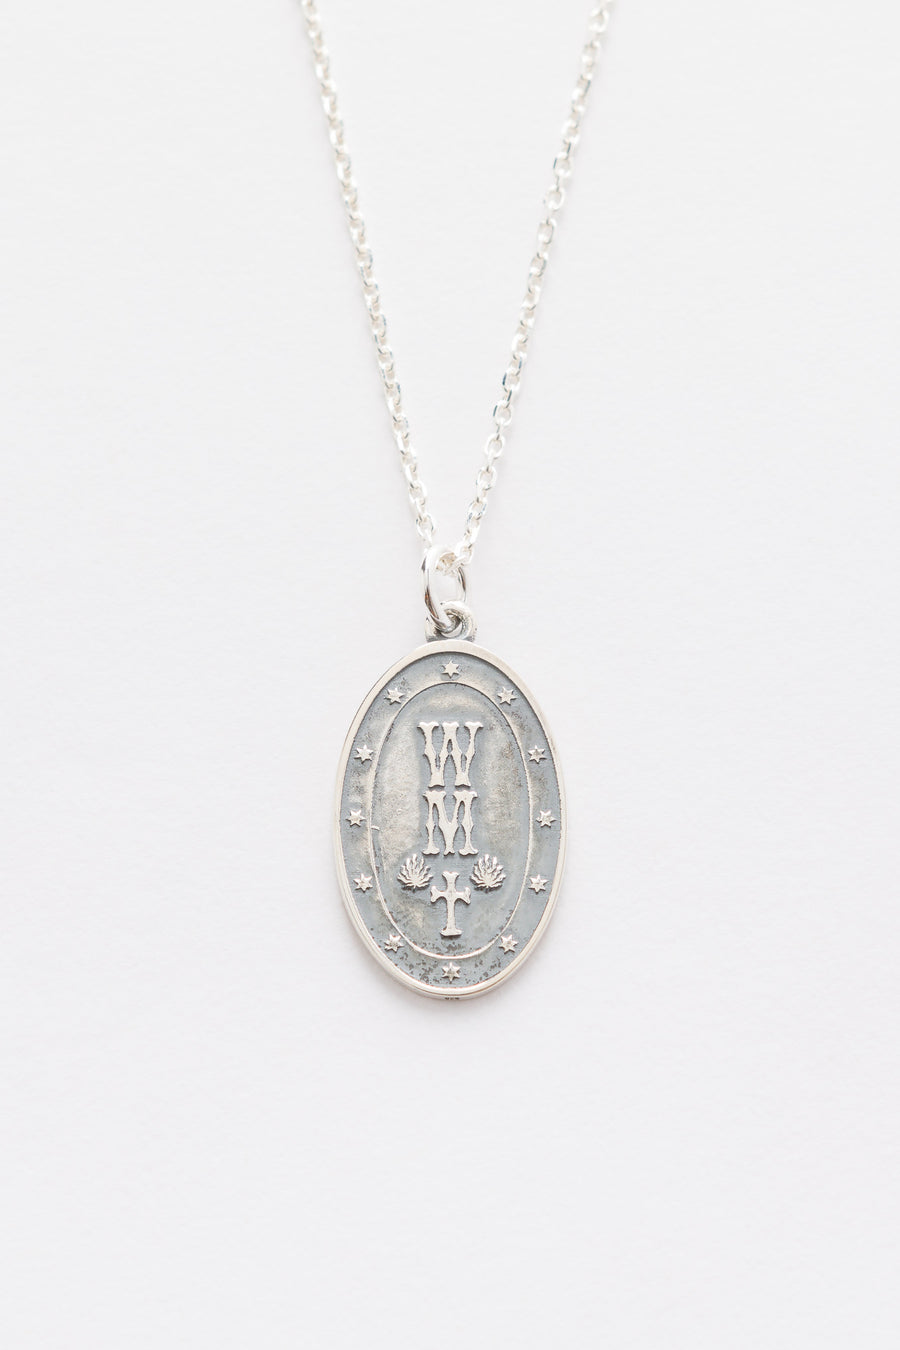 Wacko Maria Medal Necklace (Type-1) in Silver - Notre